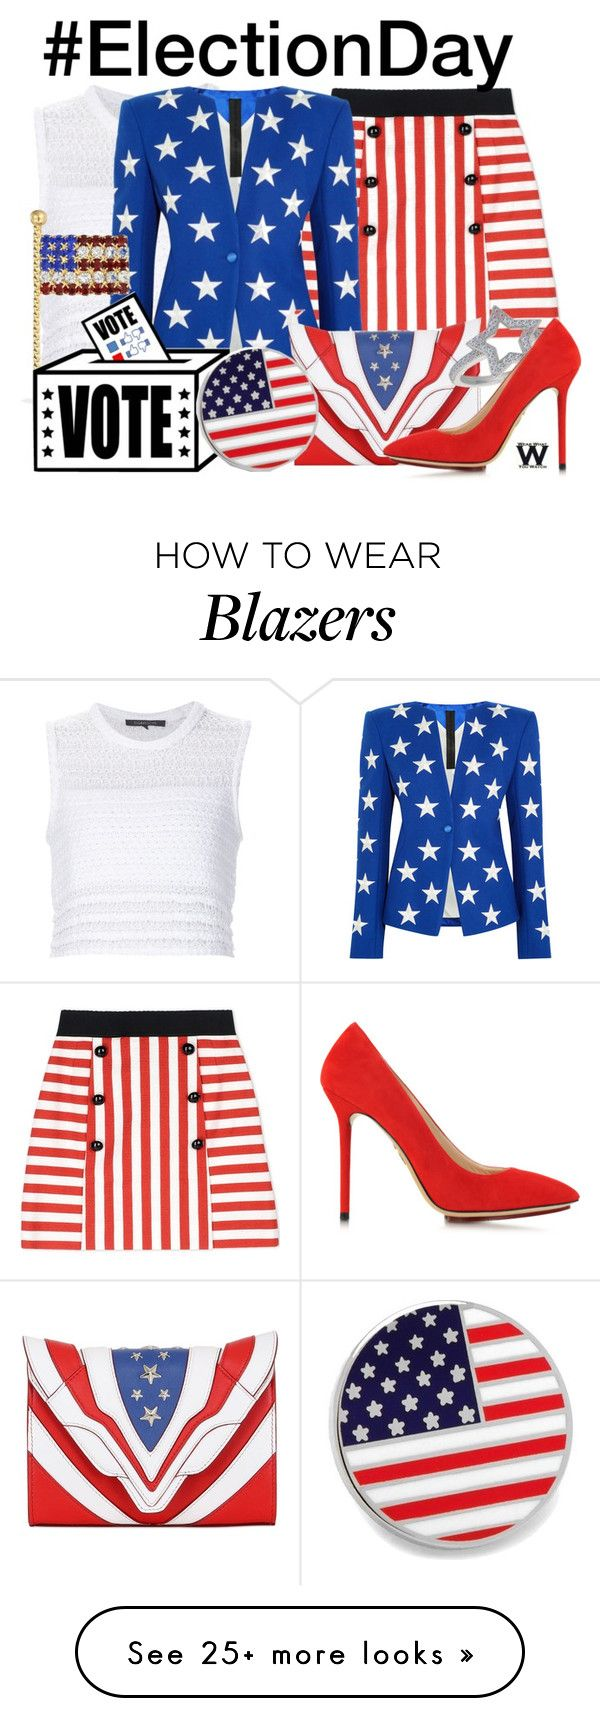 """""""#ElectionDay"""" by wearwhatyouwatch on Polyvore featuring Thakoon, Dolce&Gabbana, Gareth Pugh, Bling Jewelry, Elena Ghisellini, Charlotte Olympia and Cufflinks, Inc."""